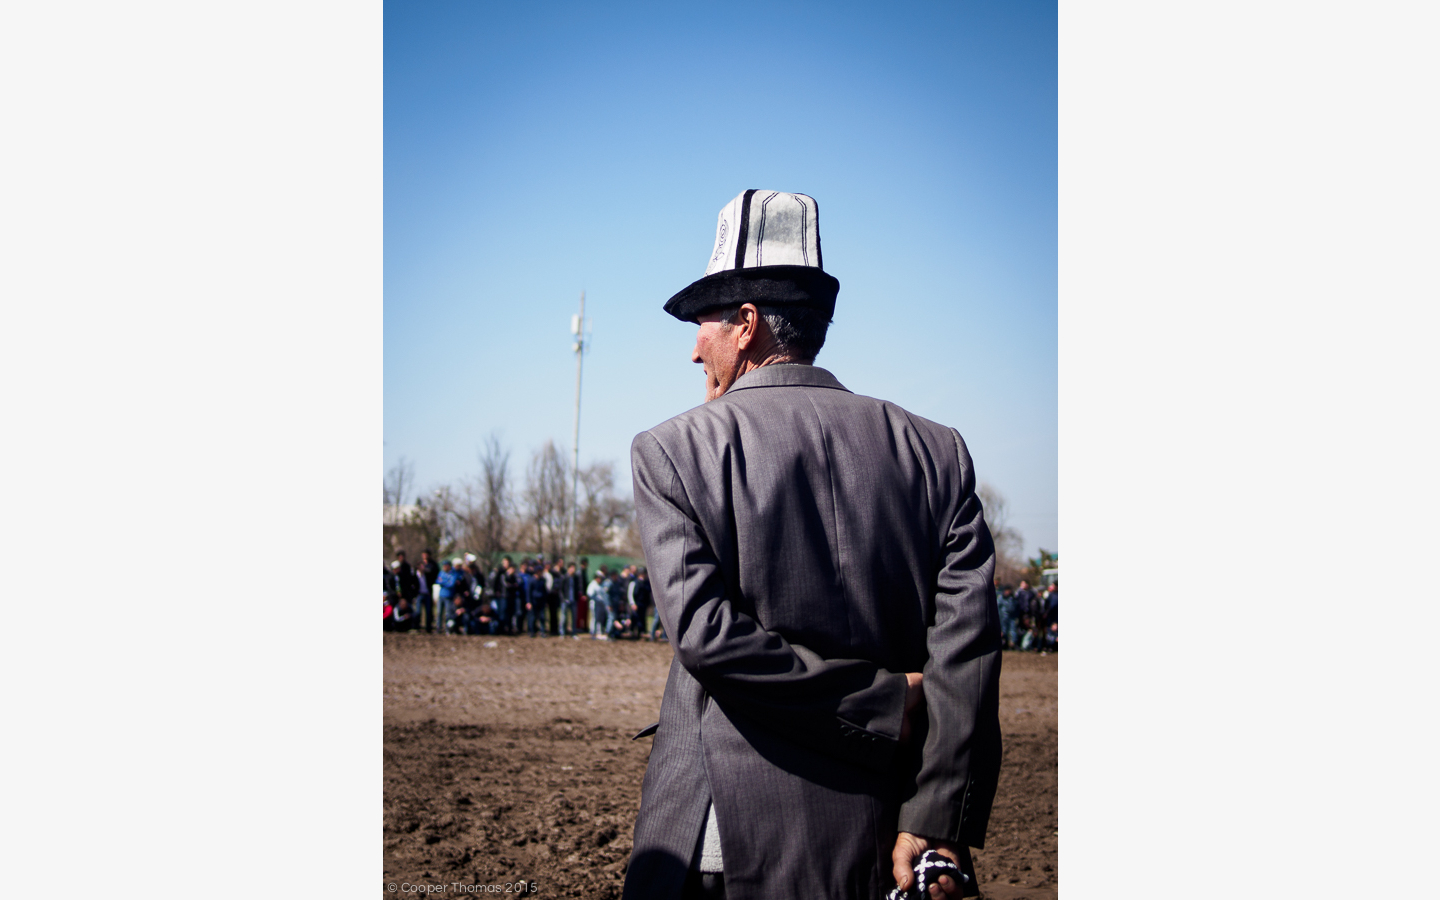 Another kalpak'd fellow watches the races intently